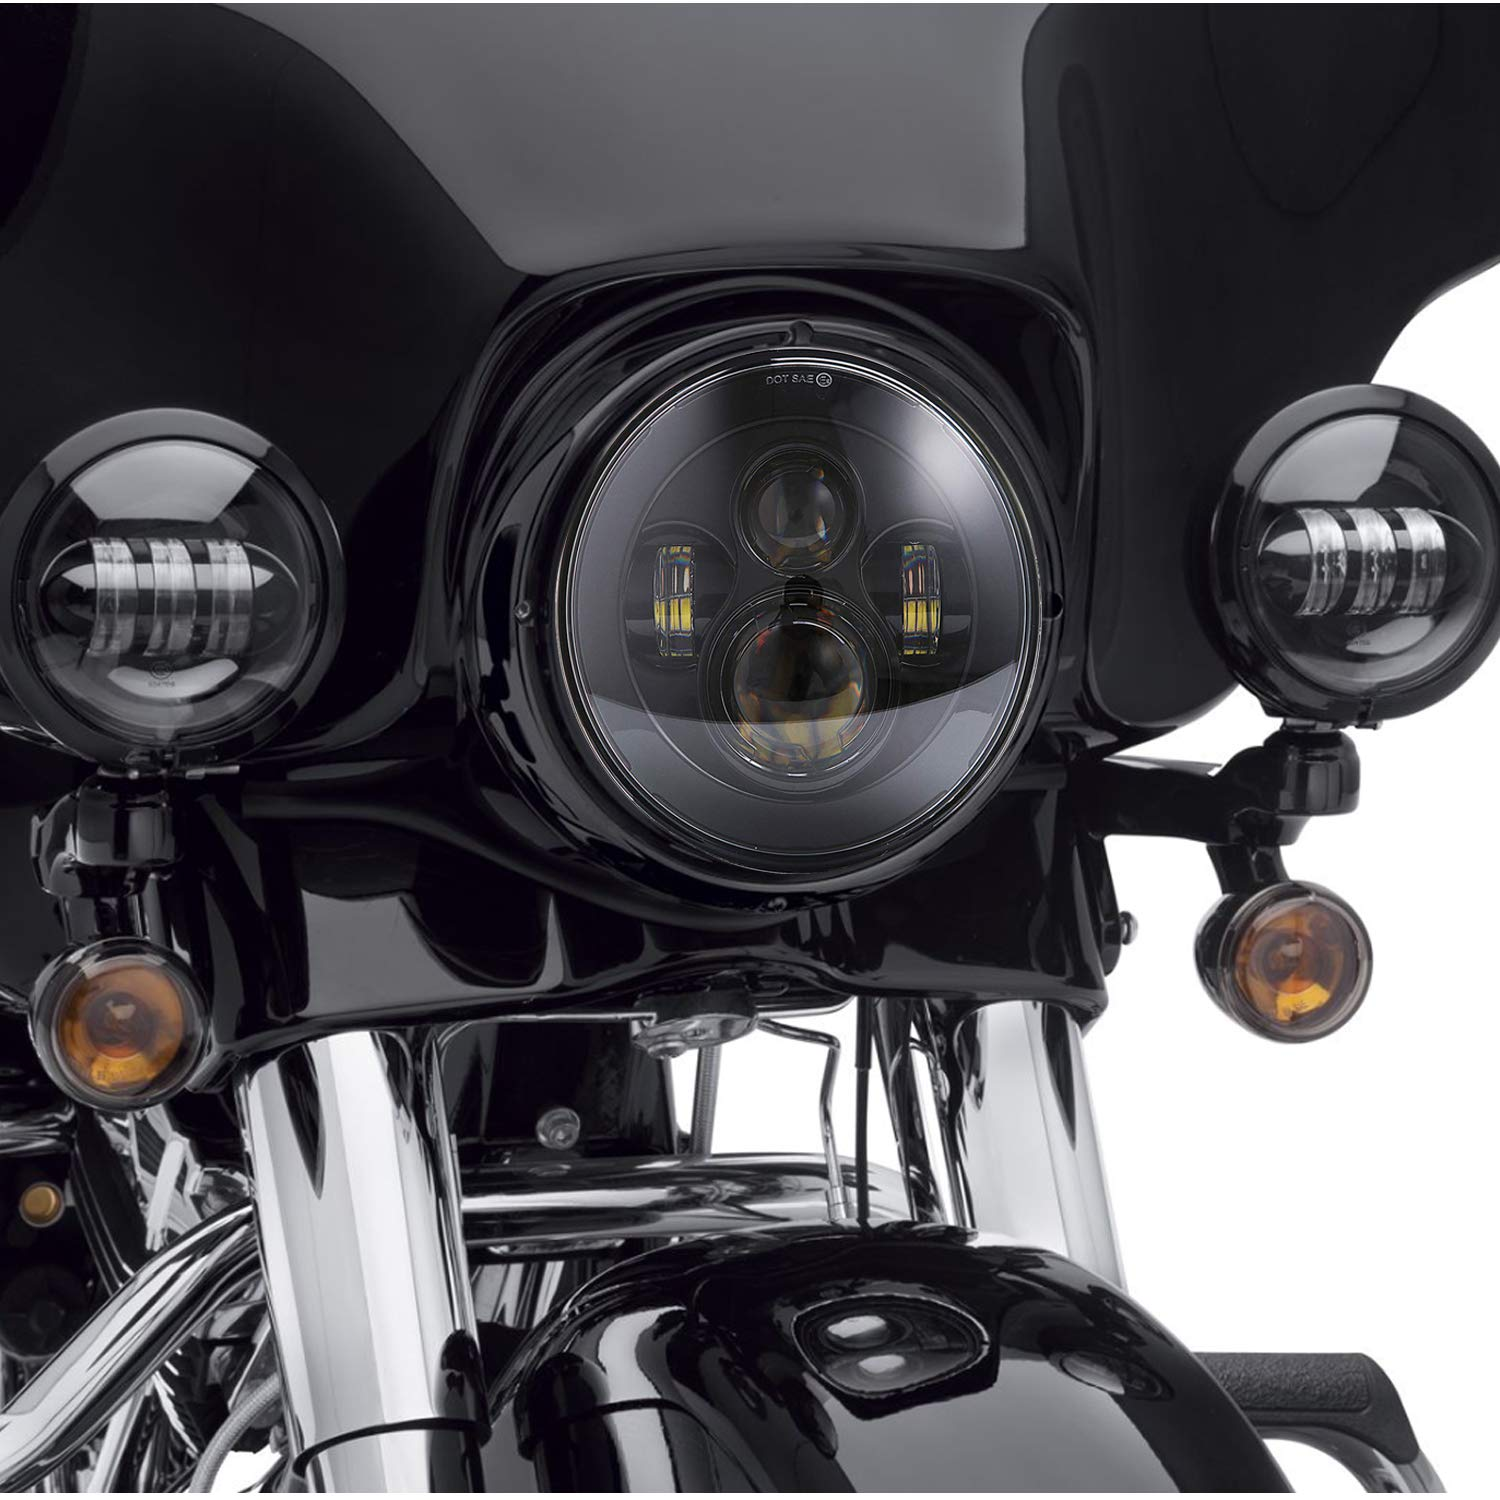 Road Glide Street Glide and Electra Glide 4.5 Fog Light for Harley Davidson Road King 7 LED Headlight Ultra Limited with 4-1//2 LED Passing Lamps Mounting Bracket Ring Black